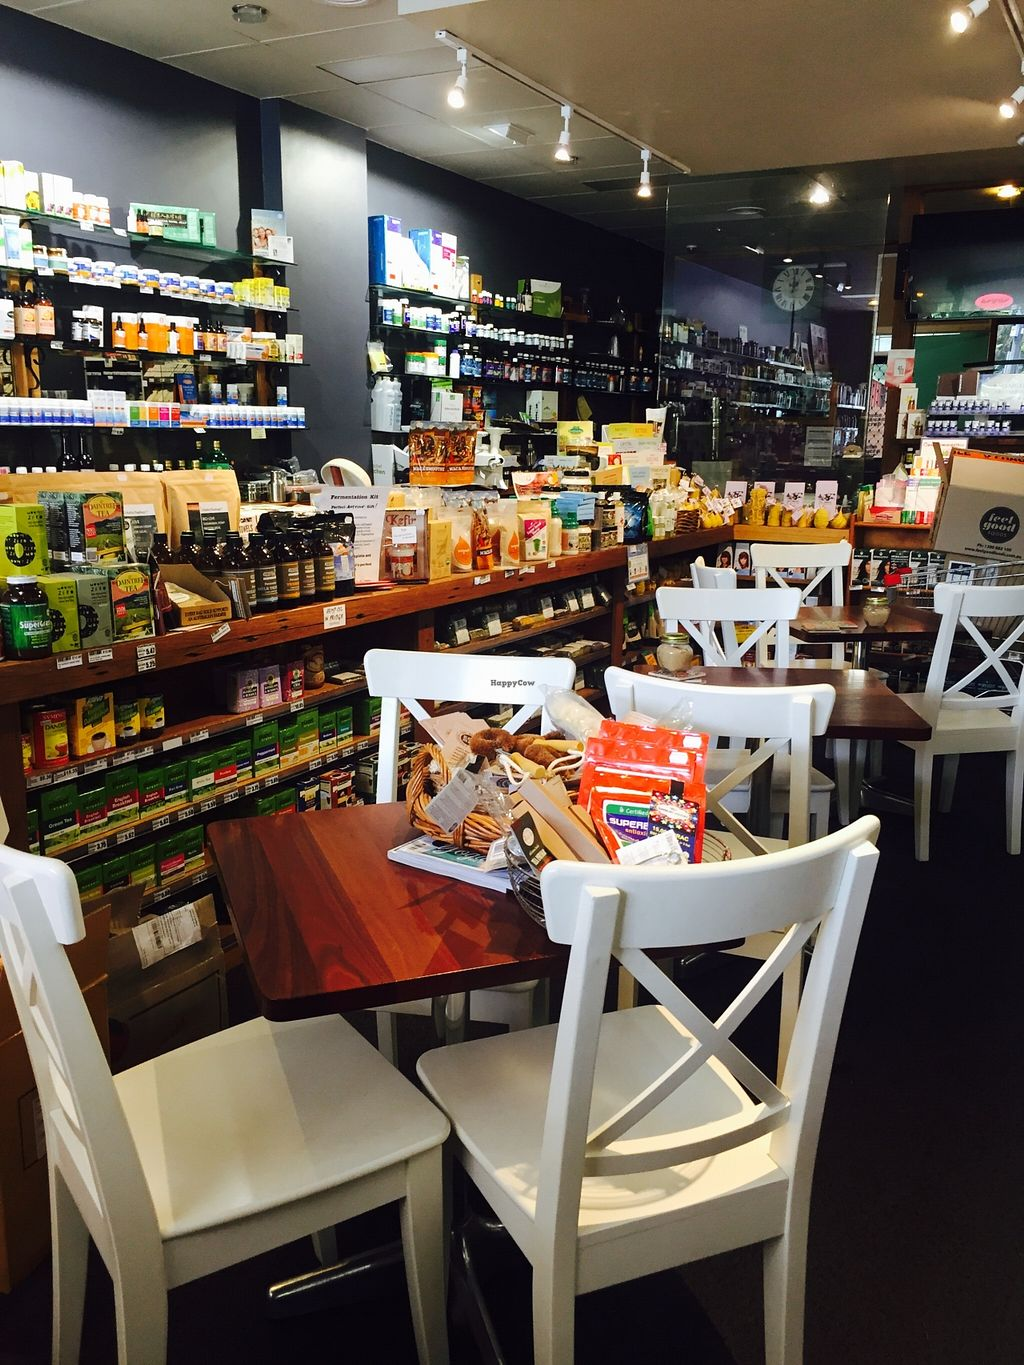 """Photo of Eastfield Natural Foods  by <a href=""""/members/profile/karlaess"""">karlaess</a> <br/>Interior <br/> February 9, 2016  - <a href='/contact/abuse/image/65580/135650'>Report</a>"""